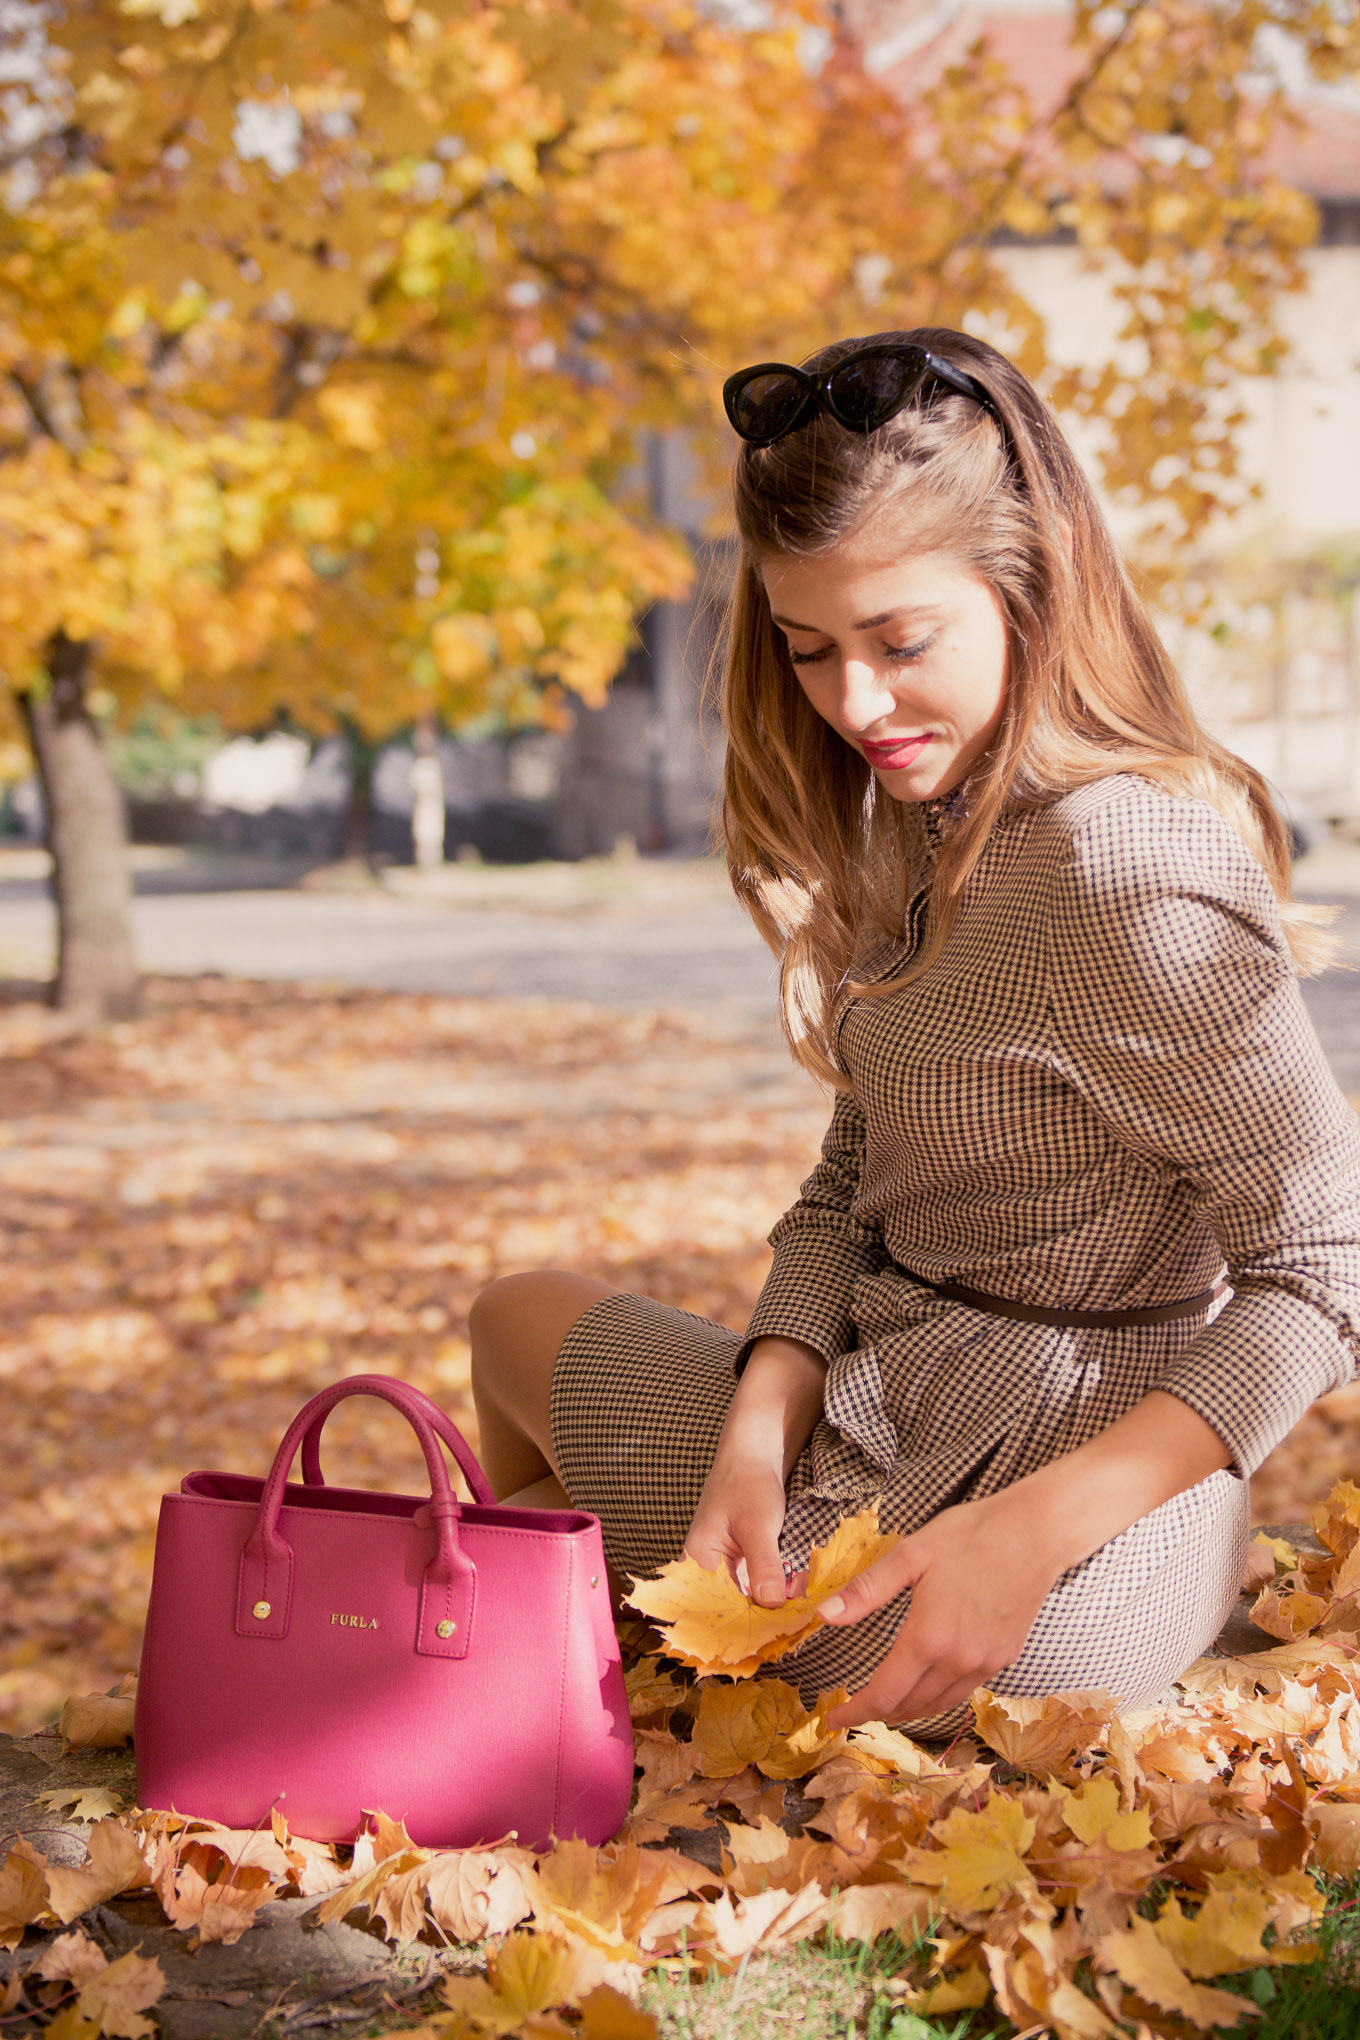 Falling into fall furla handbag